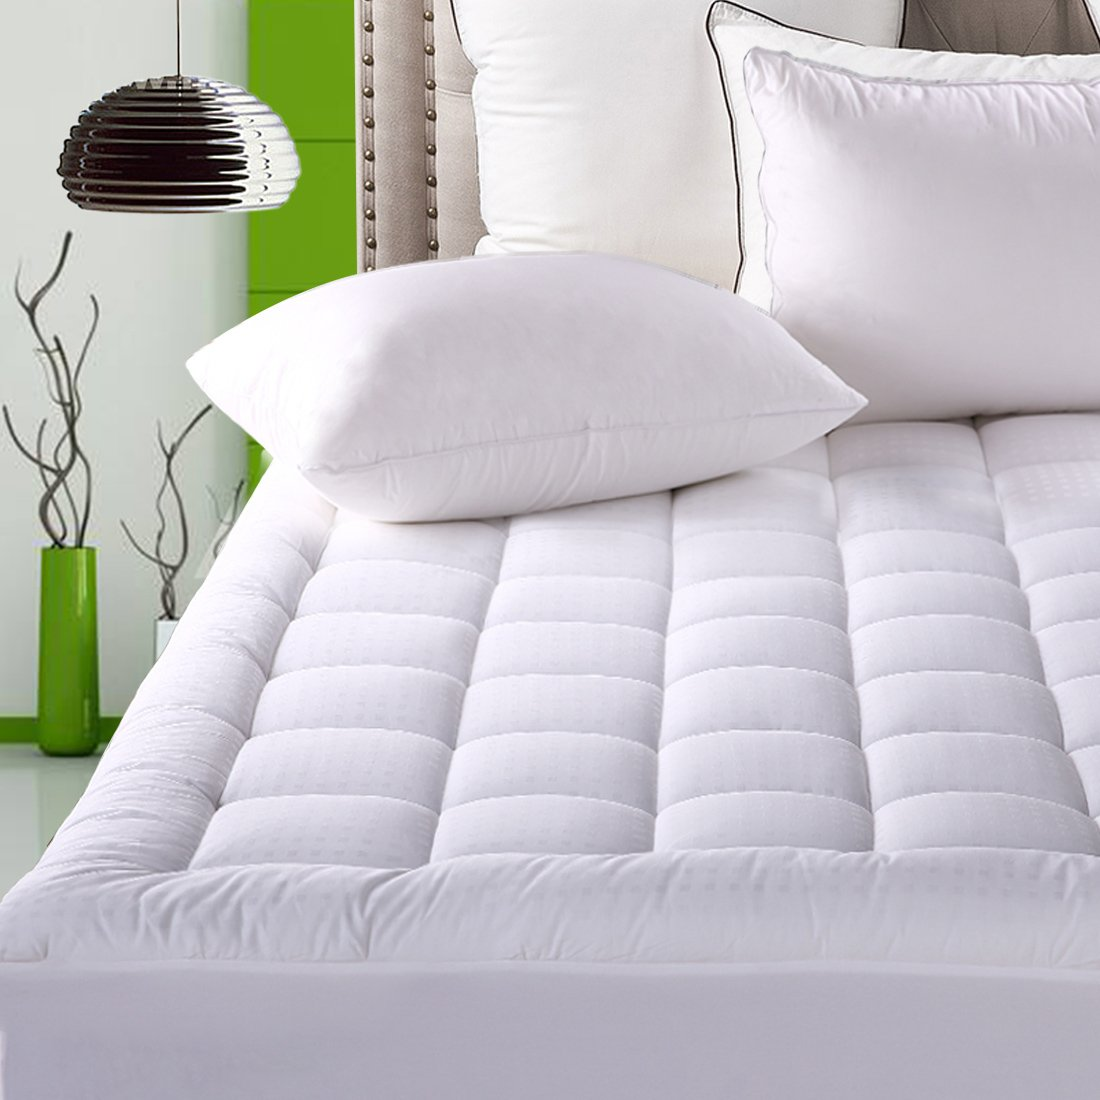 Best cooling mattress pad reviews and buying guide 2018 for Best down mattress pad